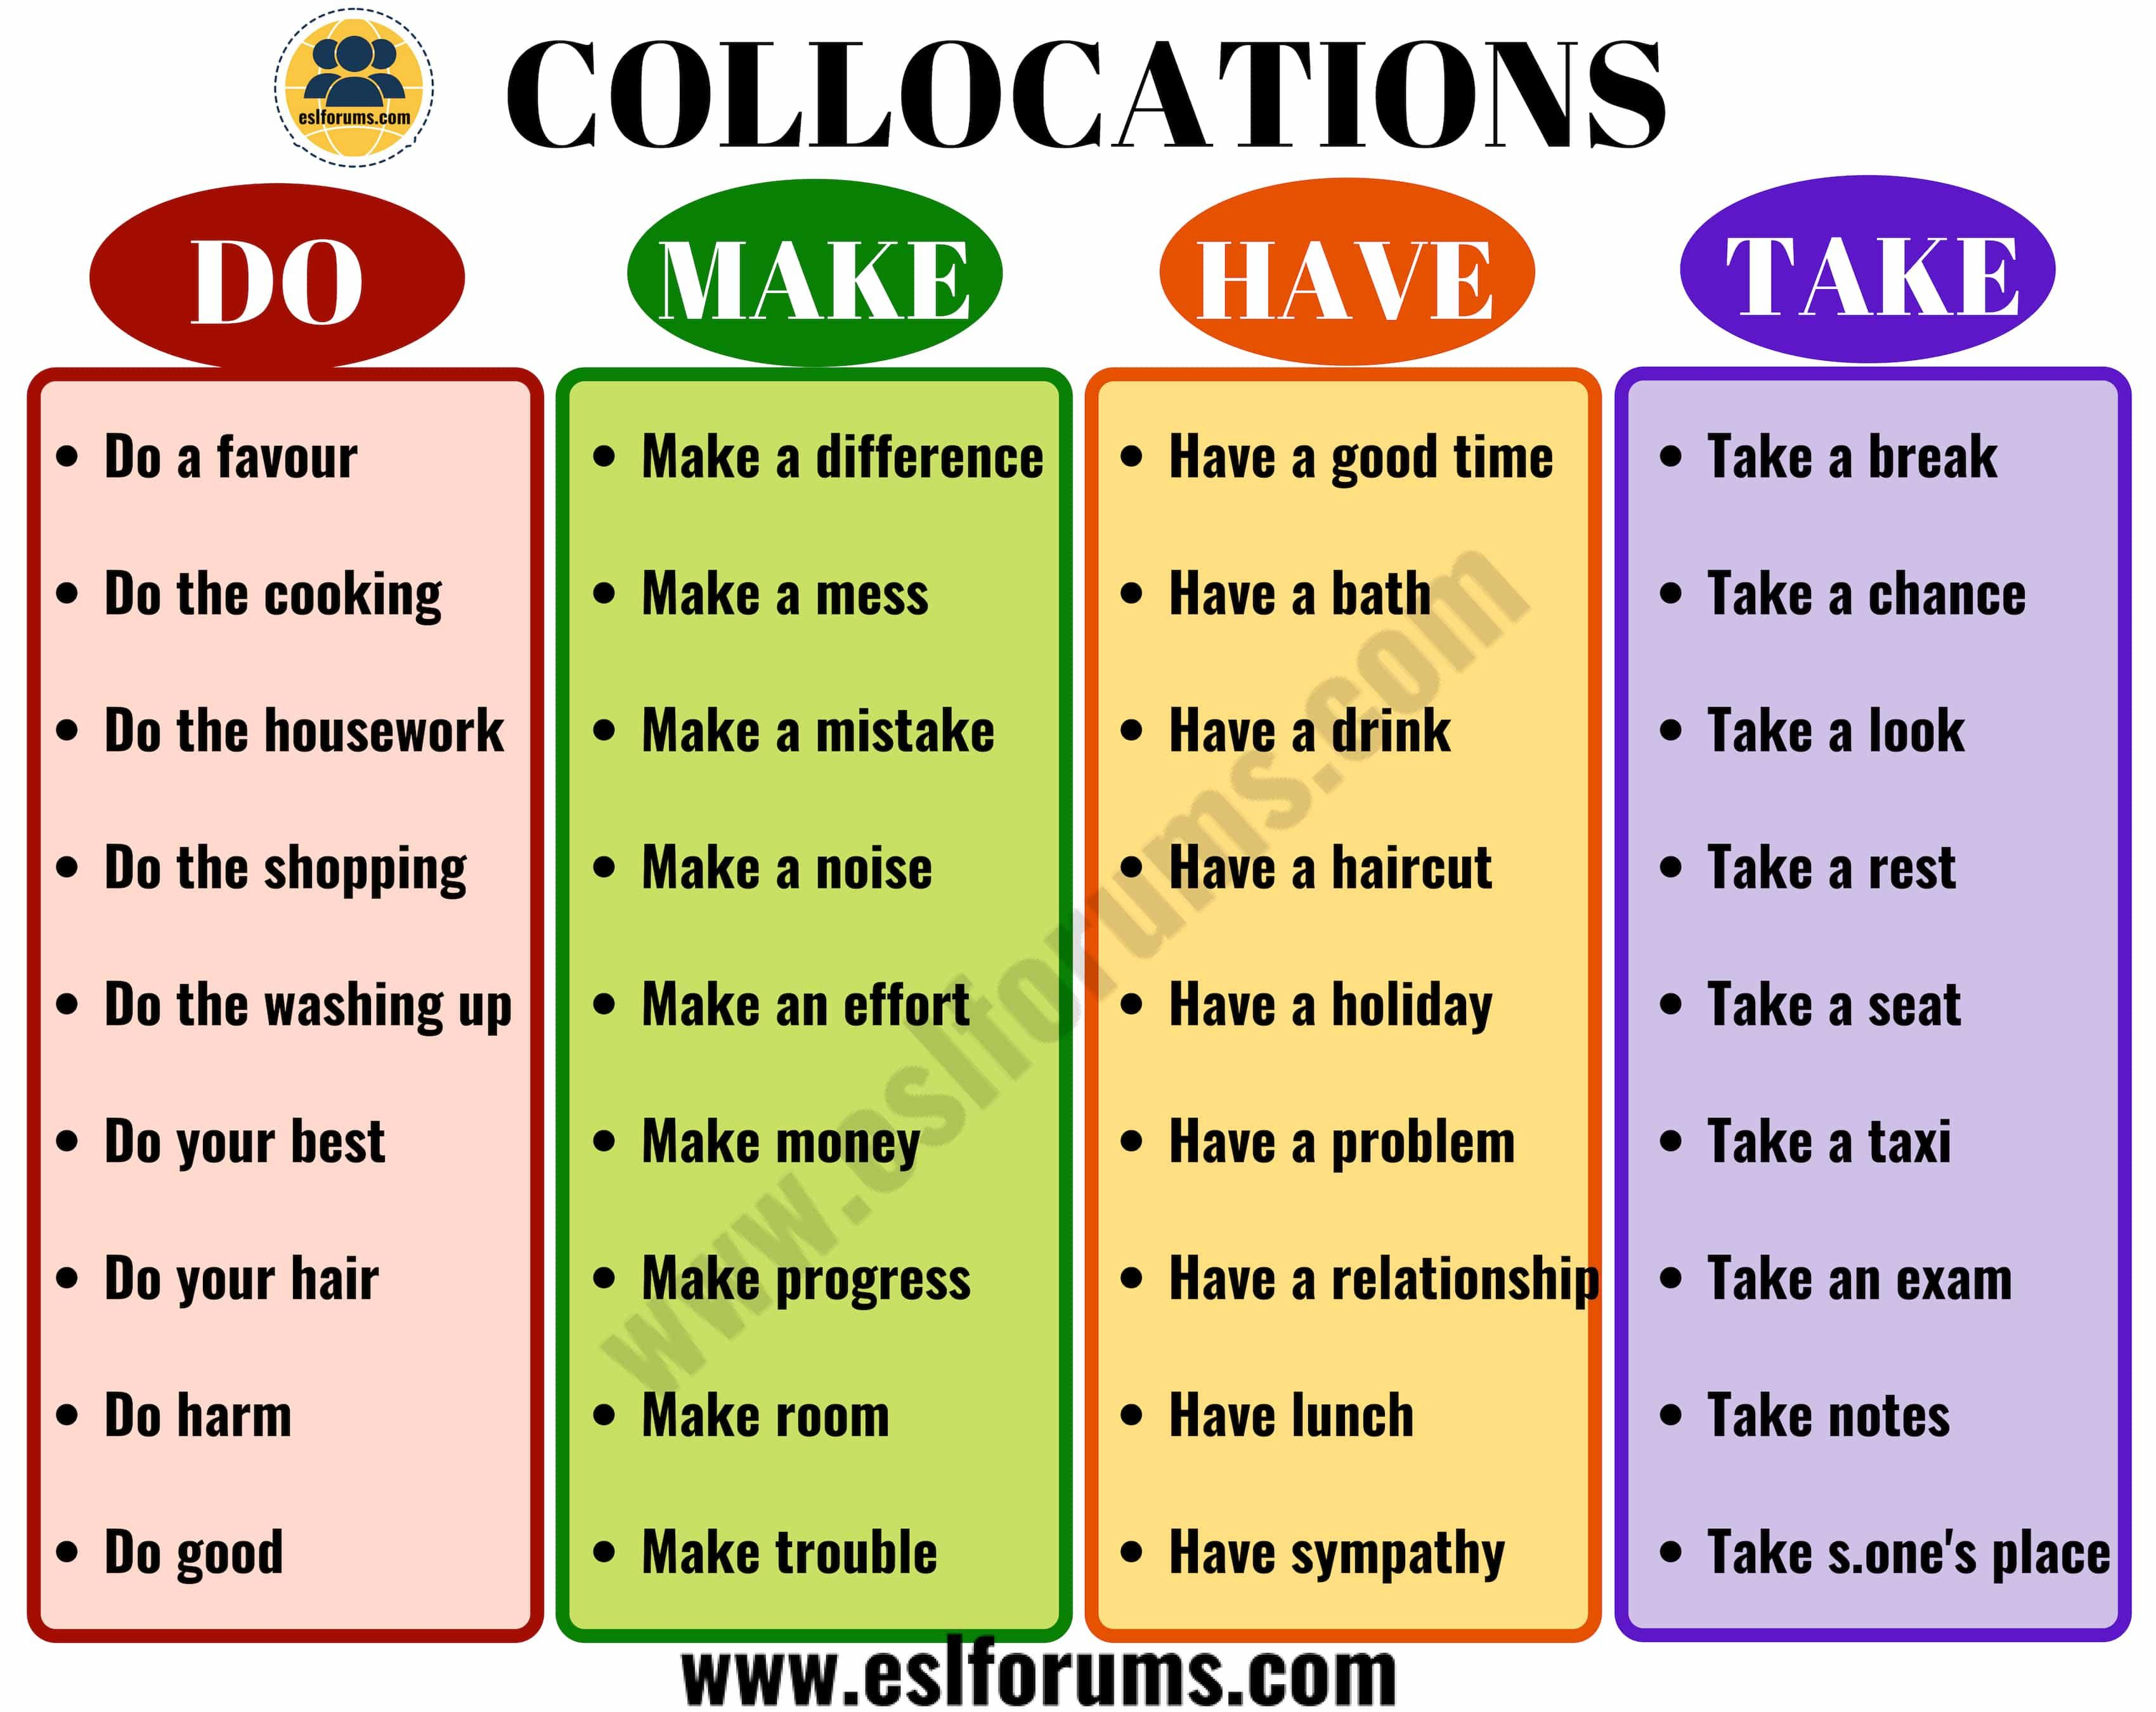 Important Collocation List You Should Know